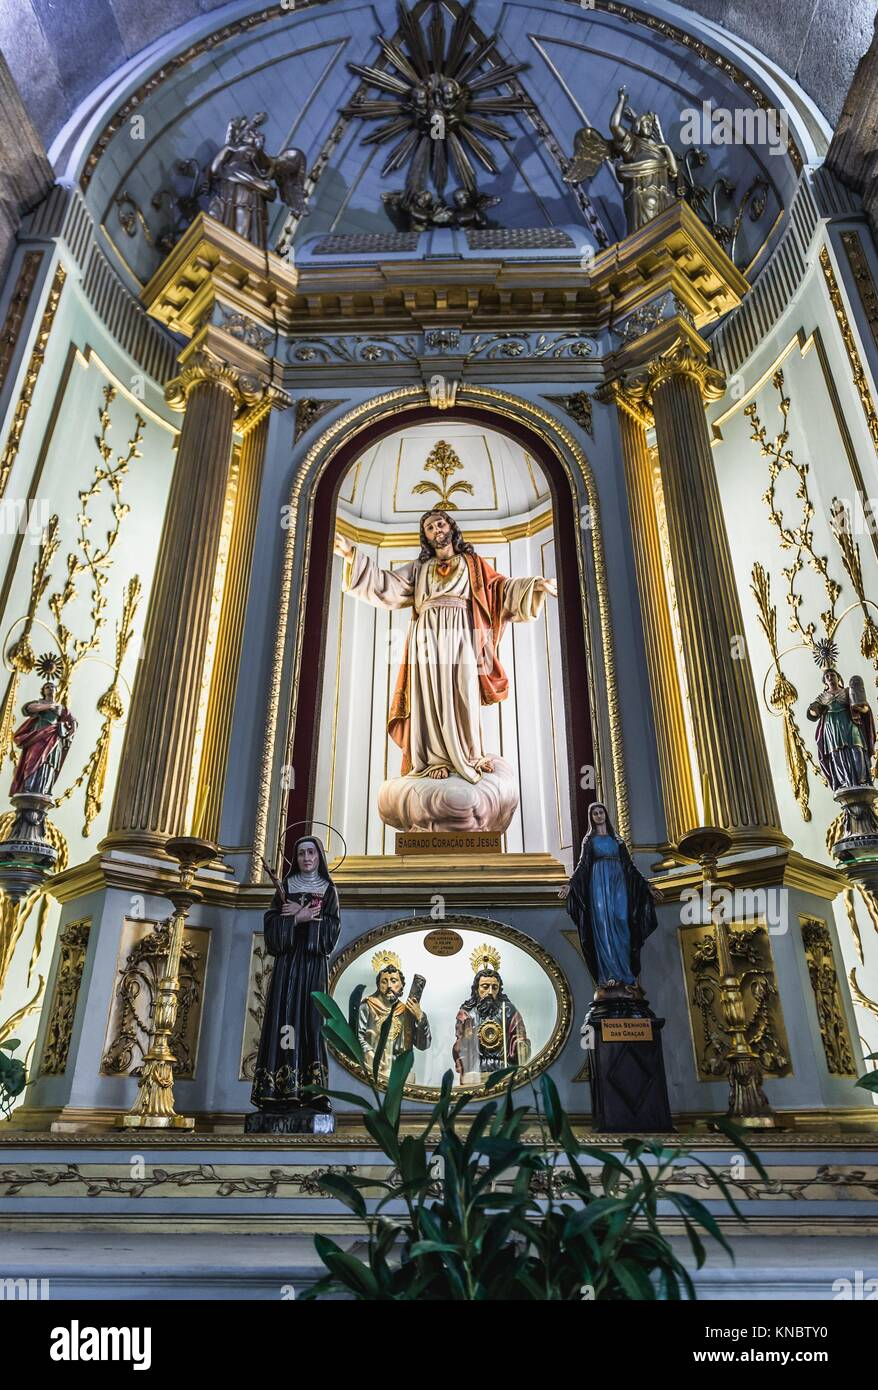 Side altar with Jesus statue in Saint Anthony's Church (also known as Church of the Congregates) in Santo Ildefonso - Stock Image